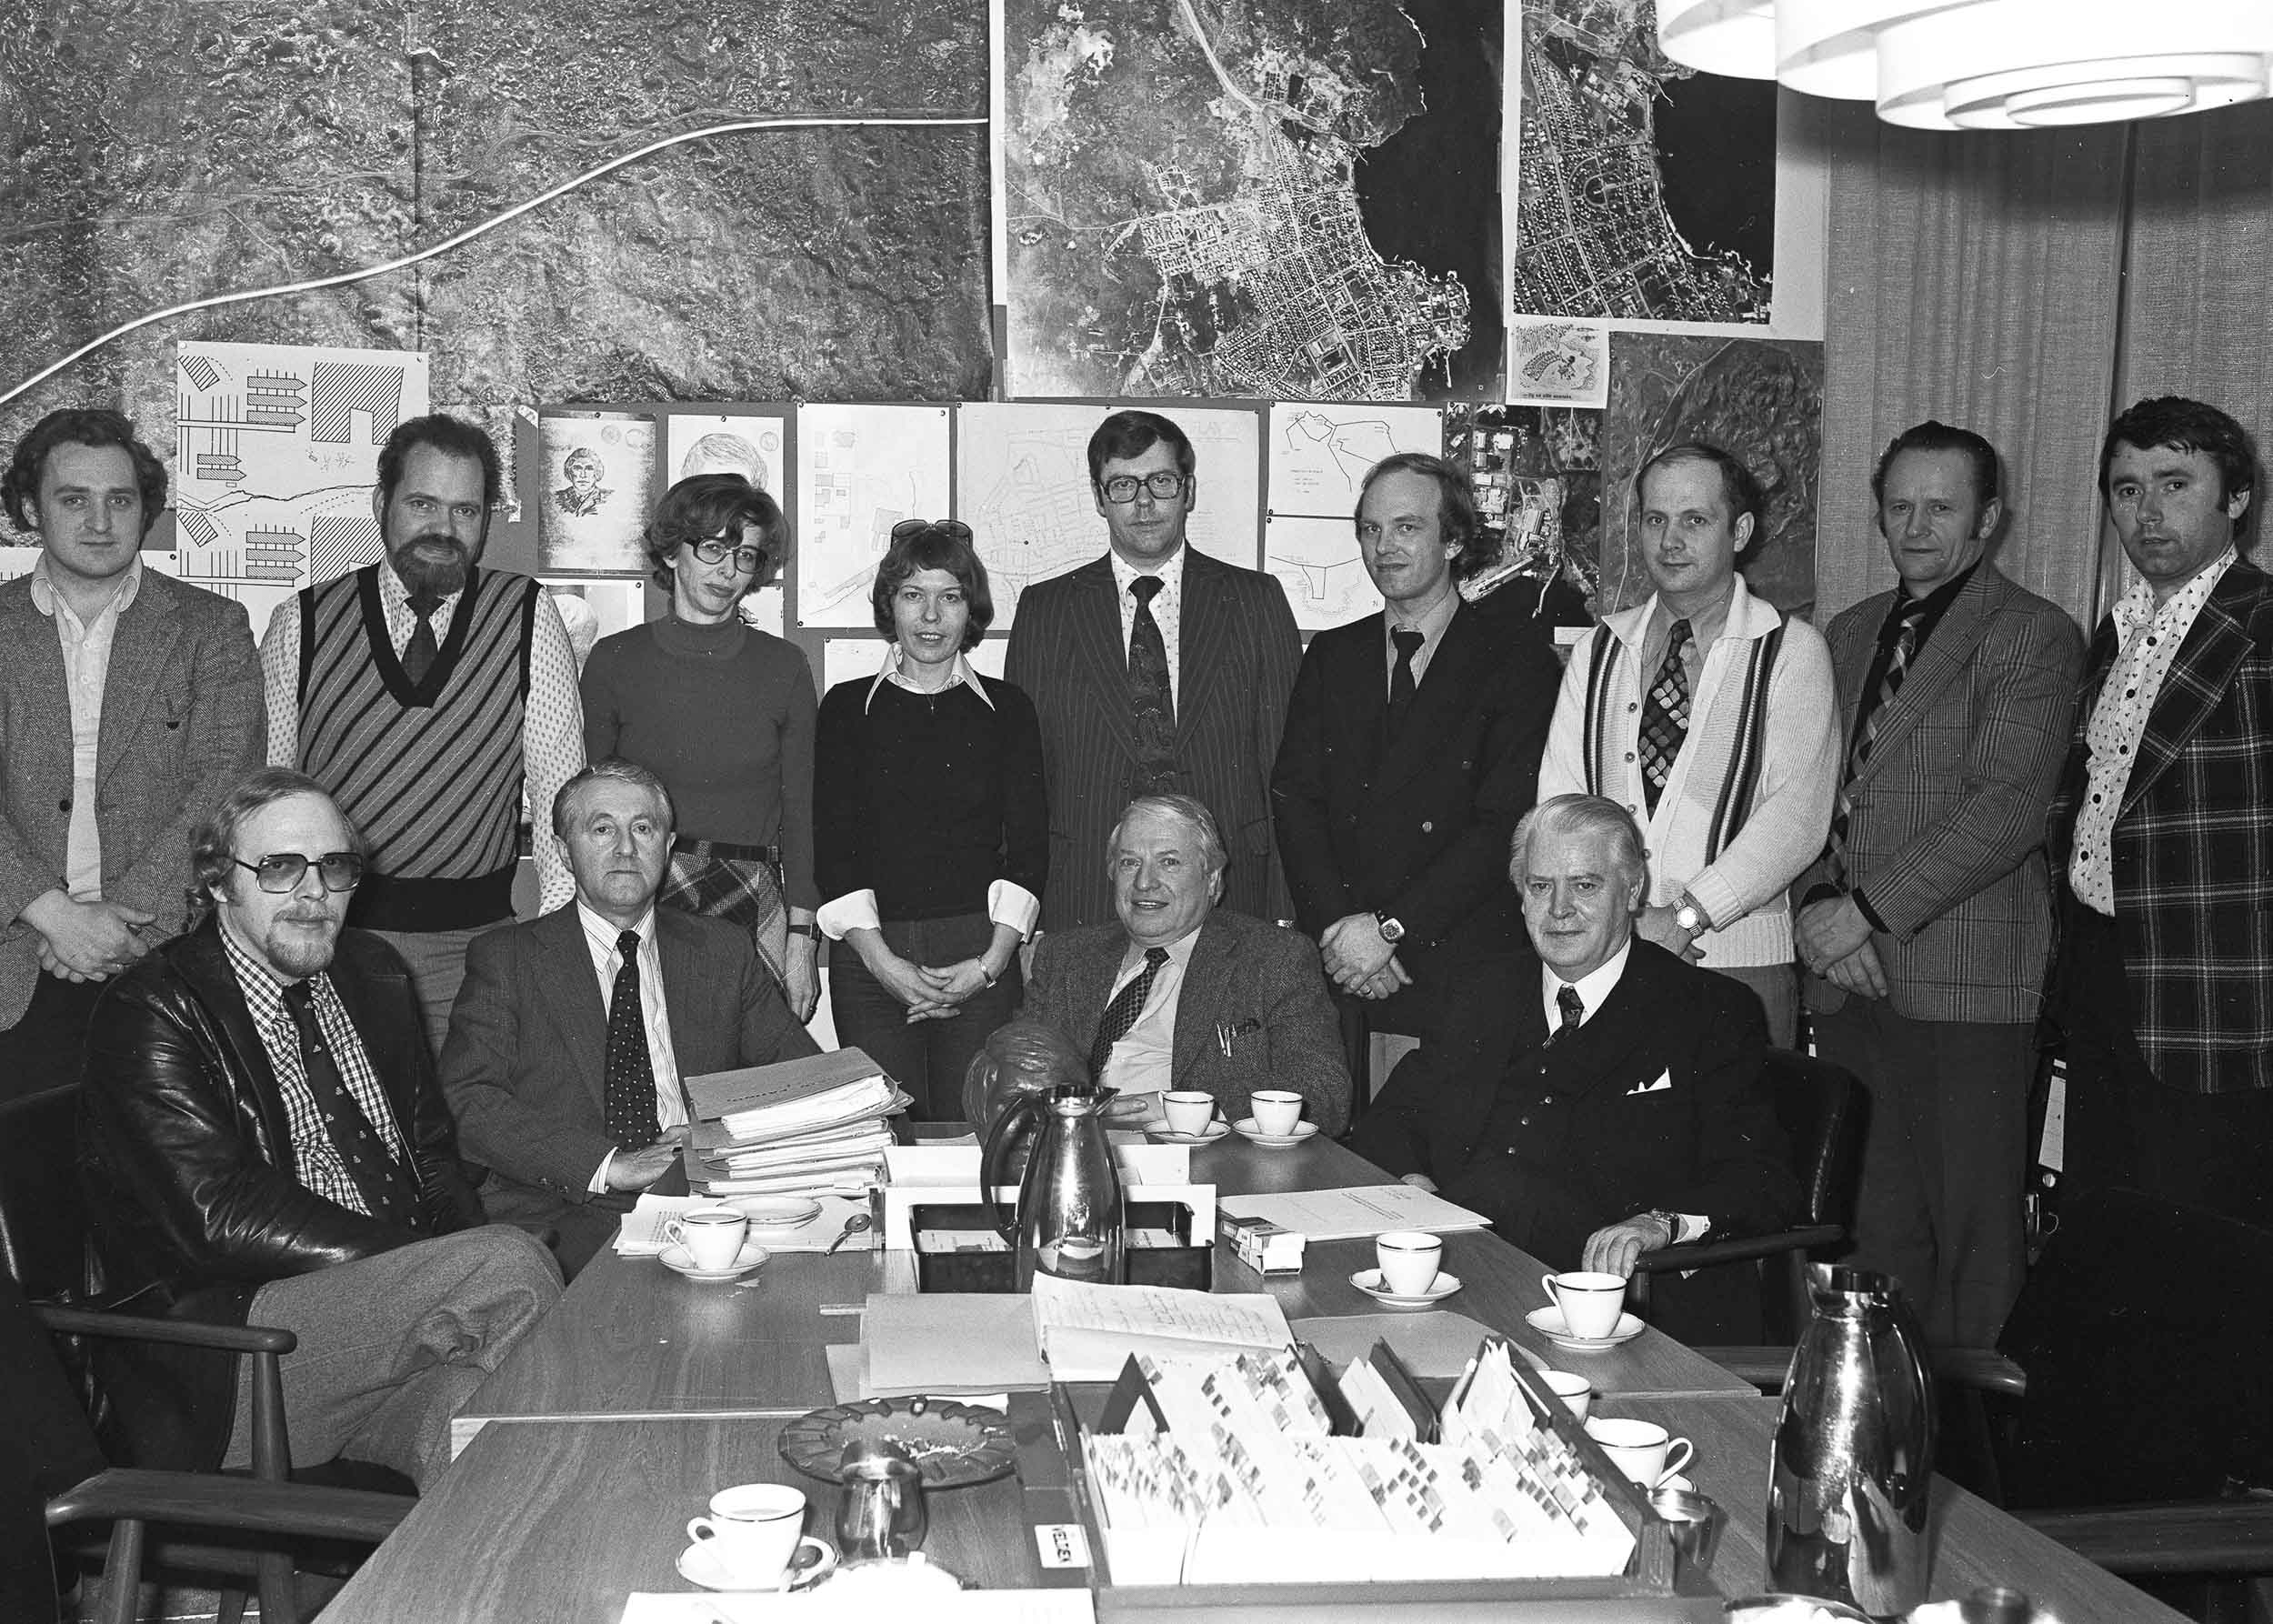 Karl Schütz's Task Force, August 1976